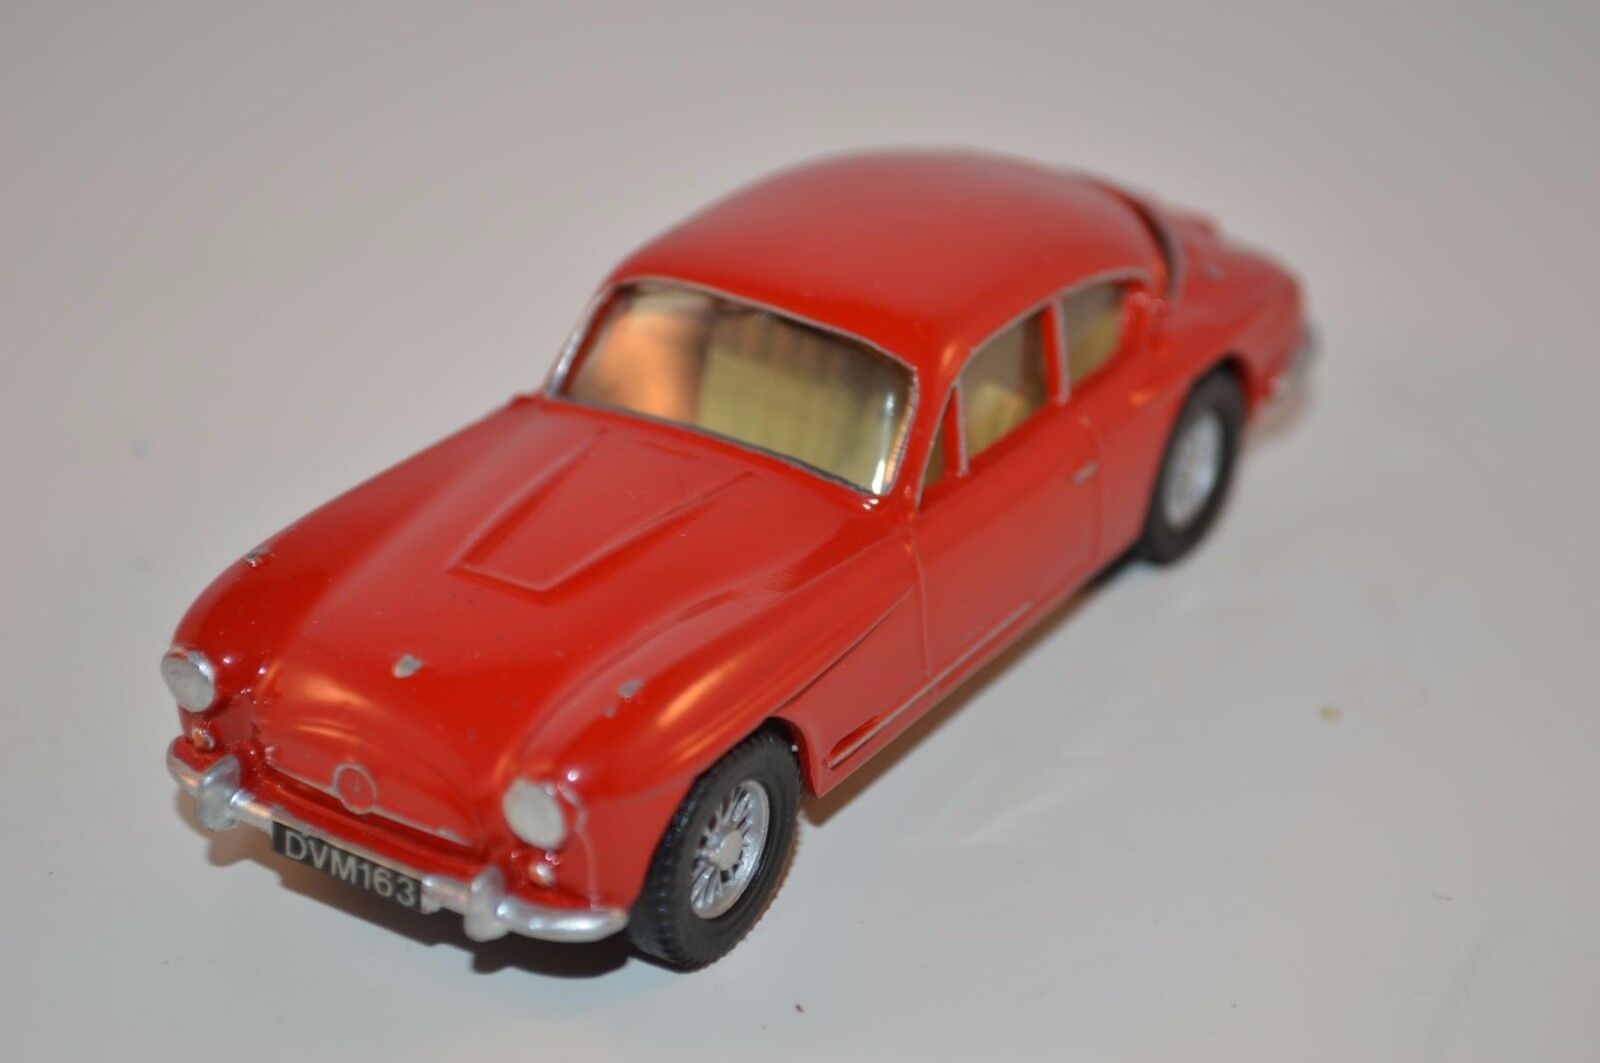 PP Copy Copy Copy Models Jensen red 1 42 scale made in Great Britain mint superb 15c0f0